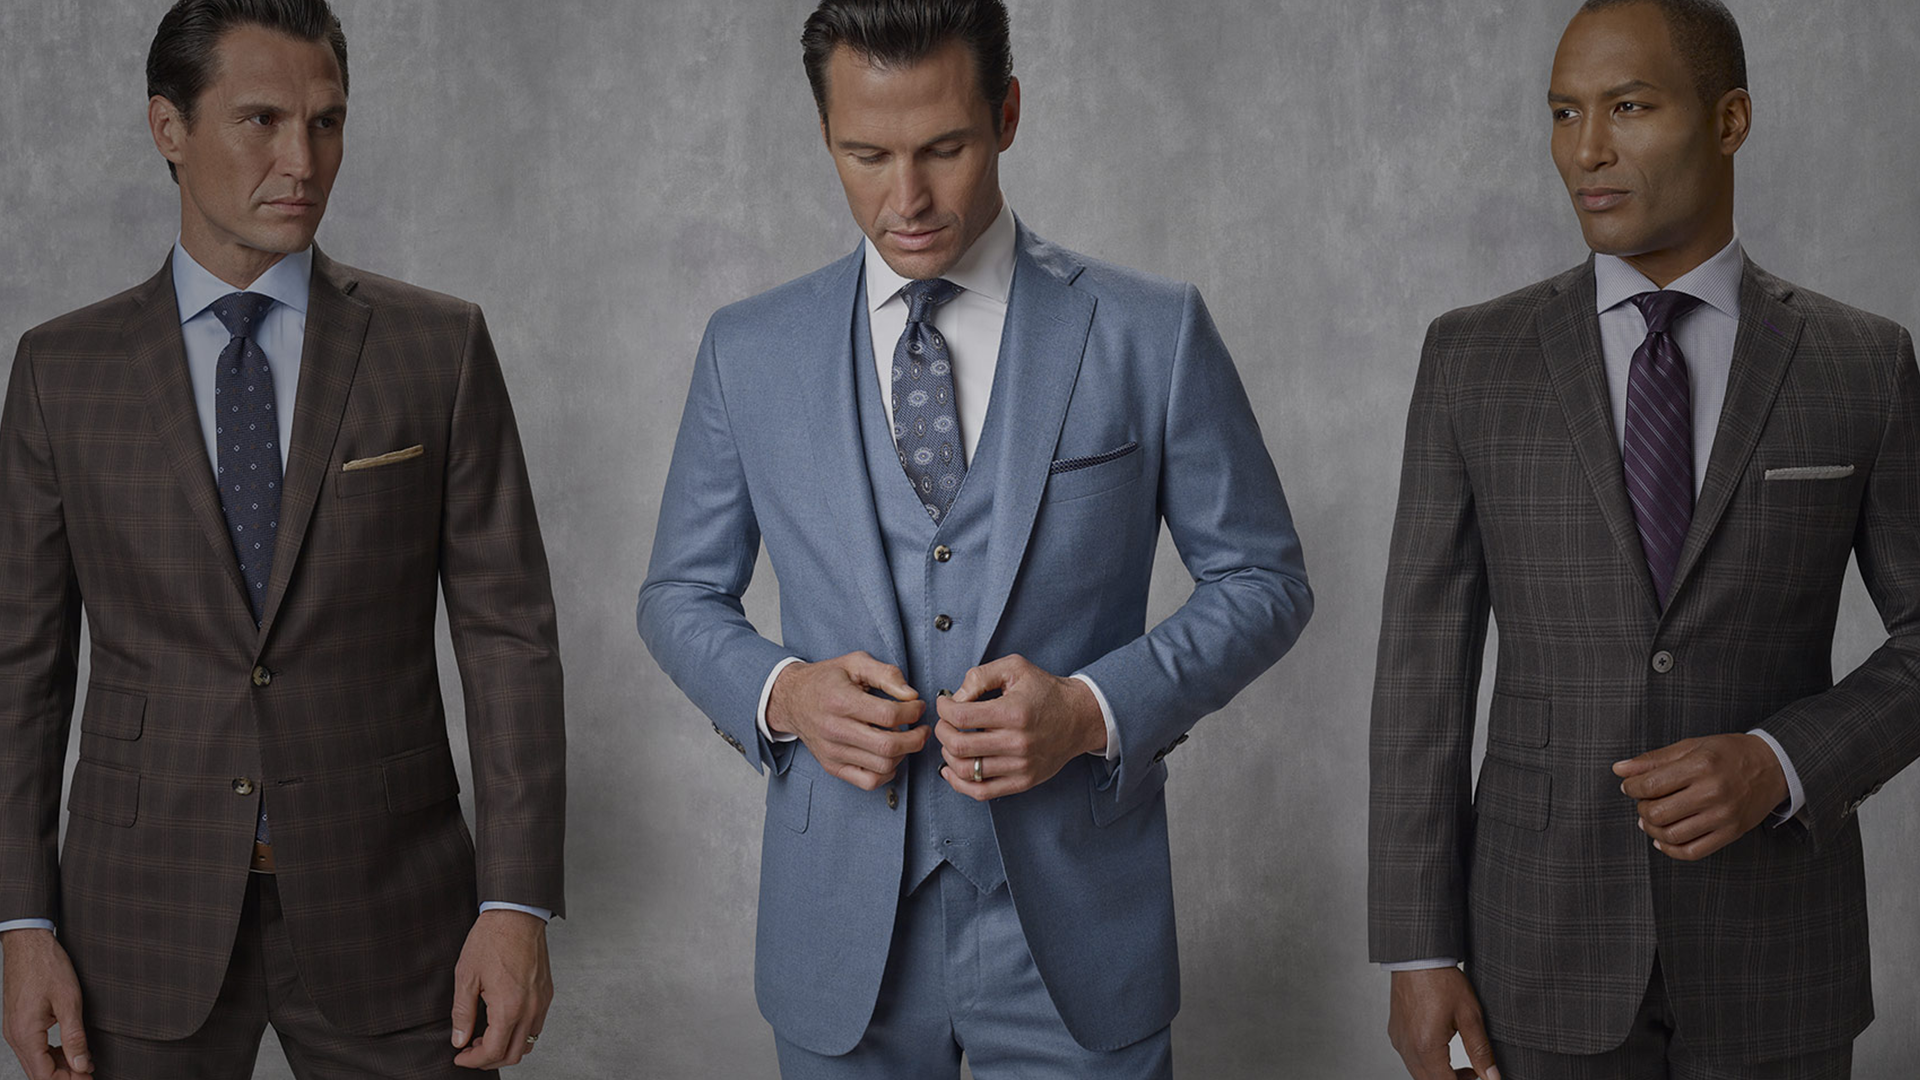 Tom James Company reviews | Formal Wear at 4020 Westchase Blvd. - Raleigh NC